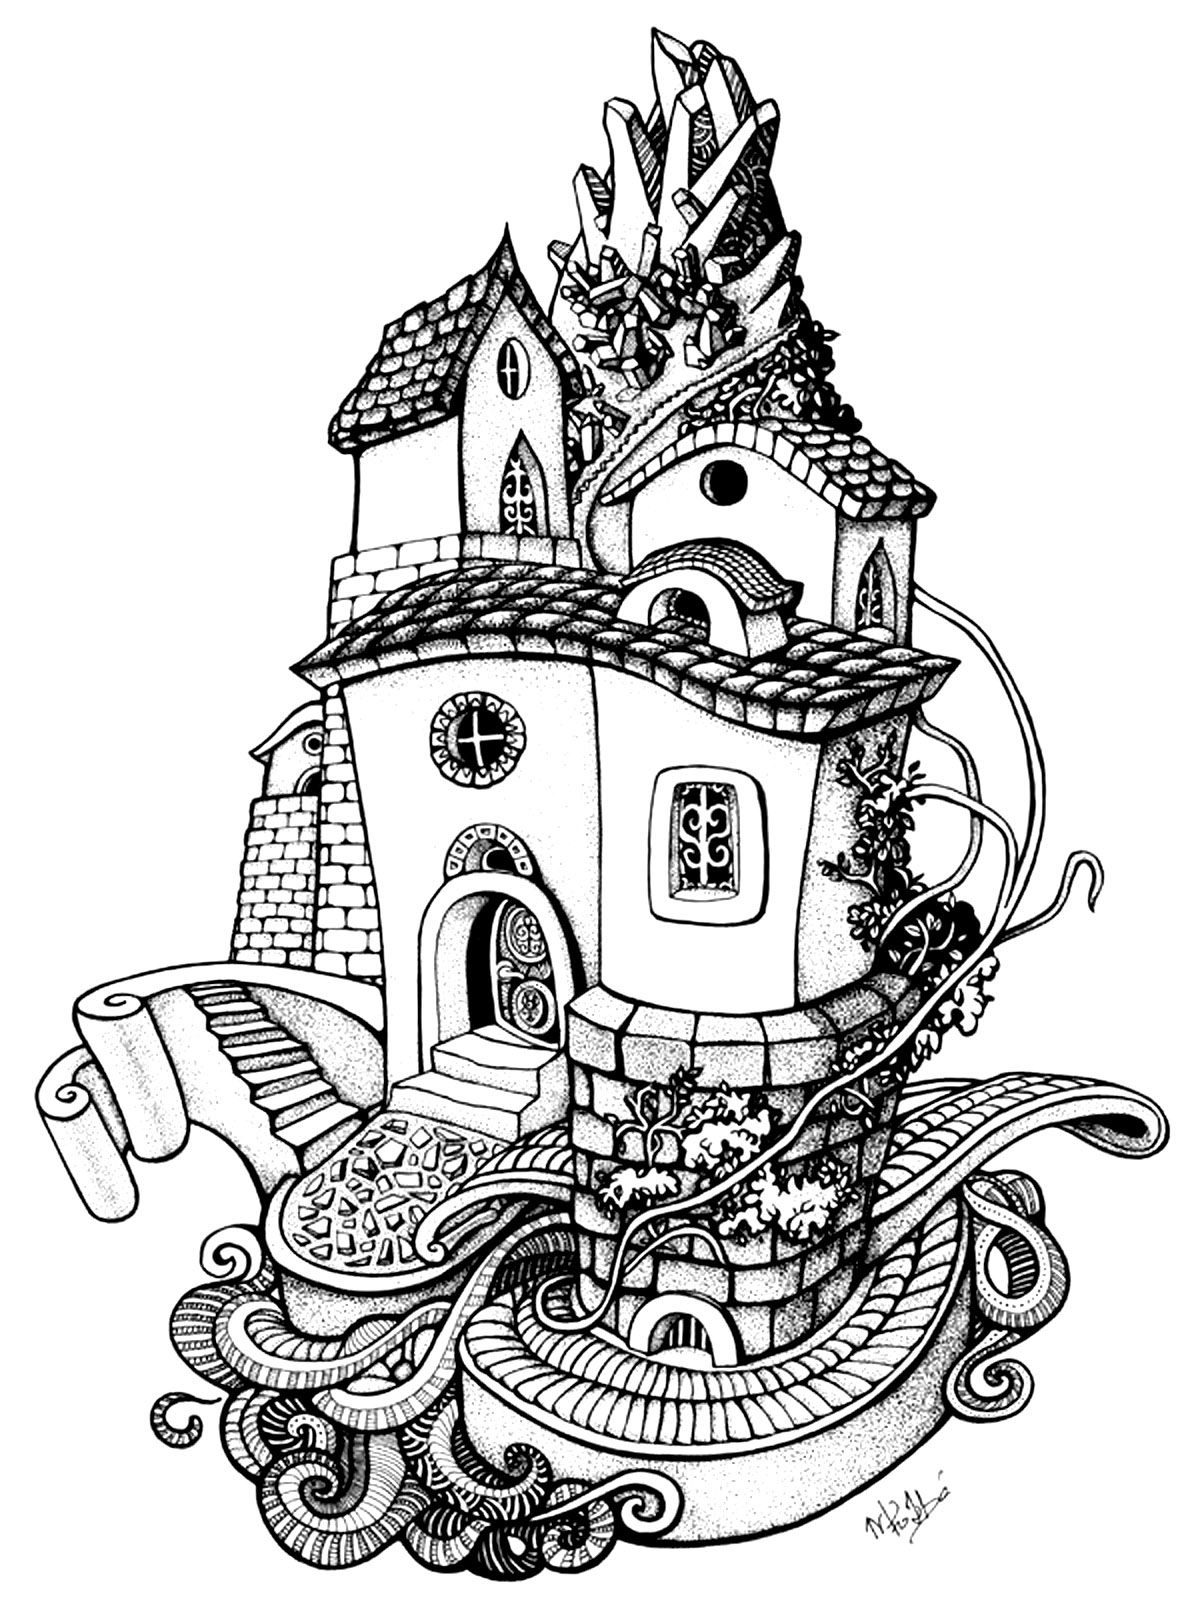 100 free coloring pages for adults and children for Dessin maison gratuit